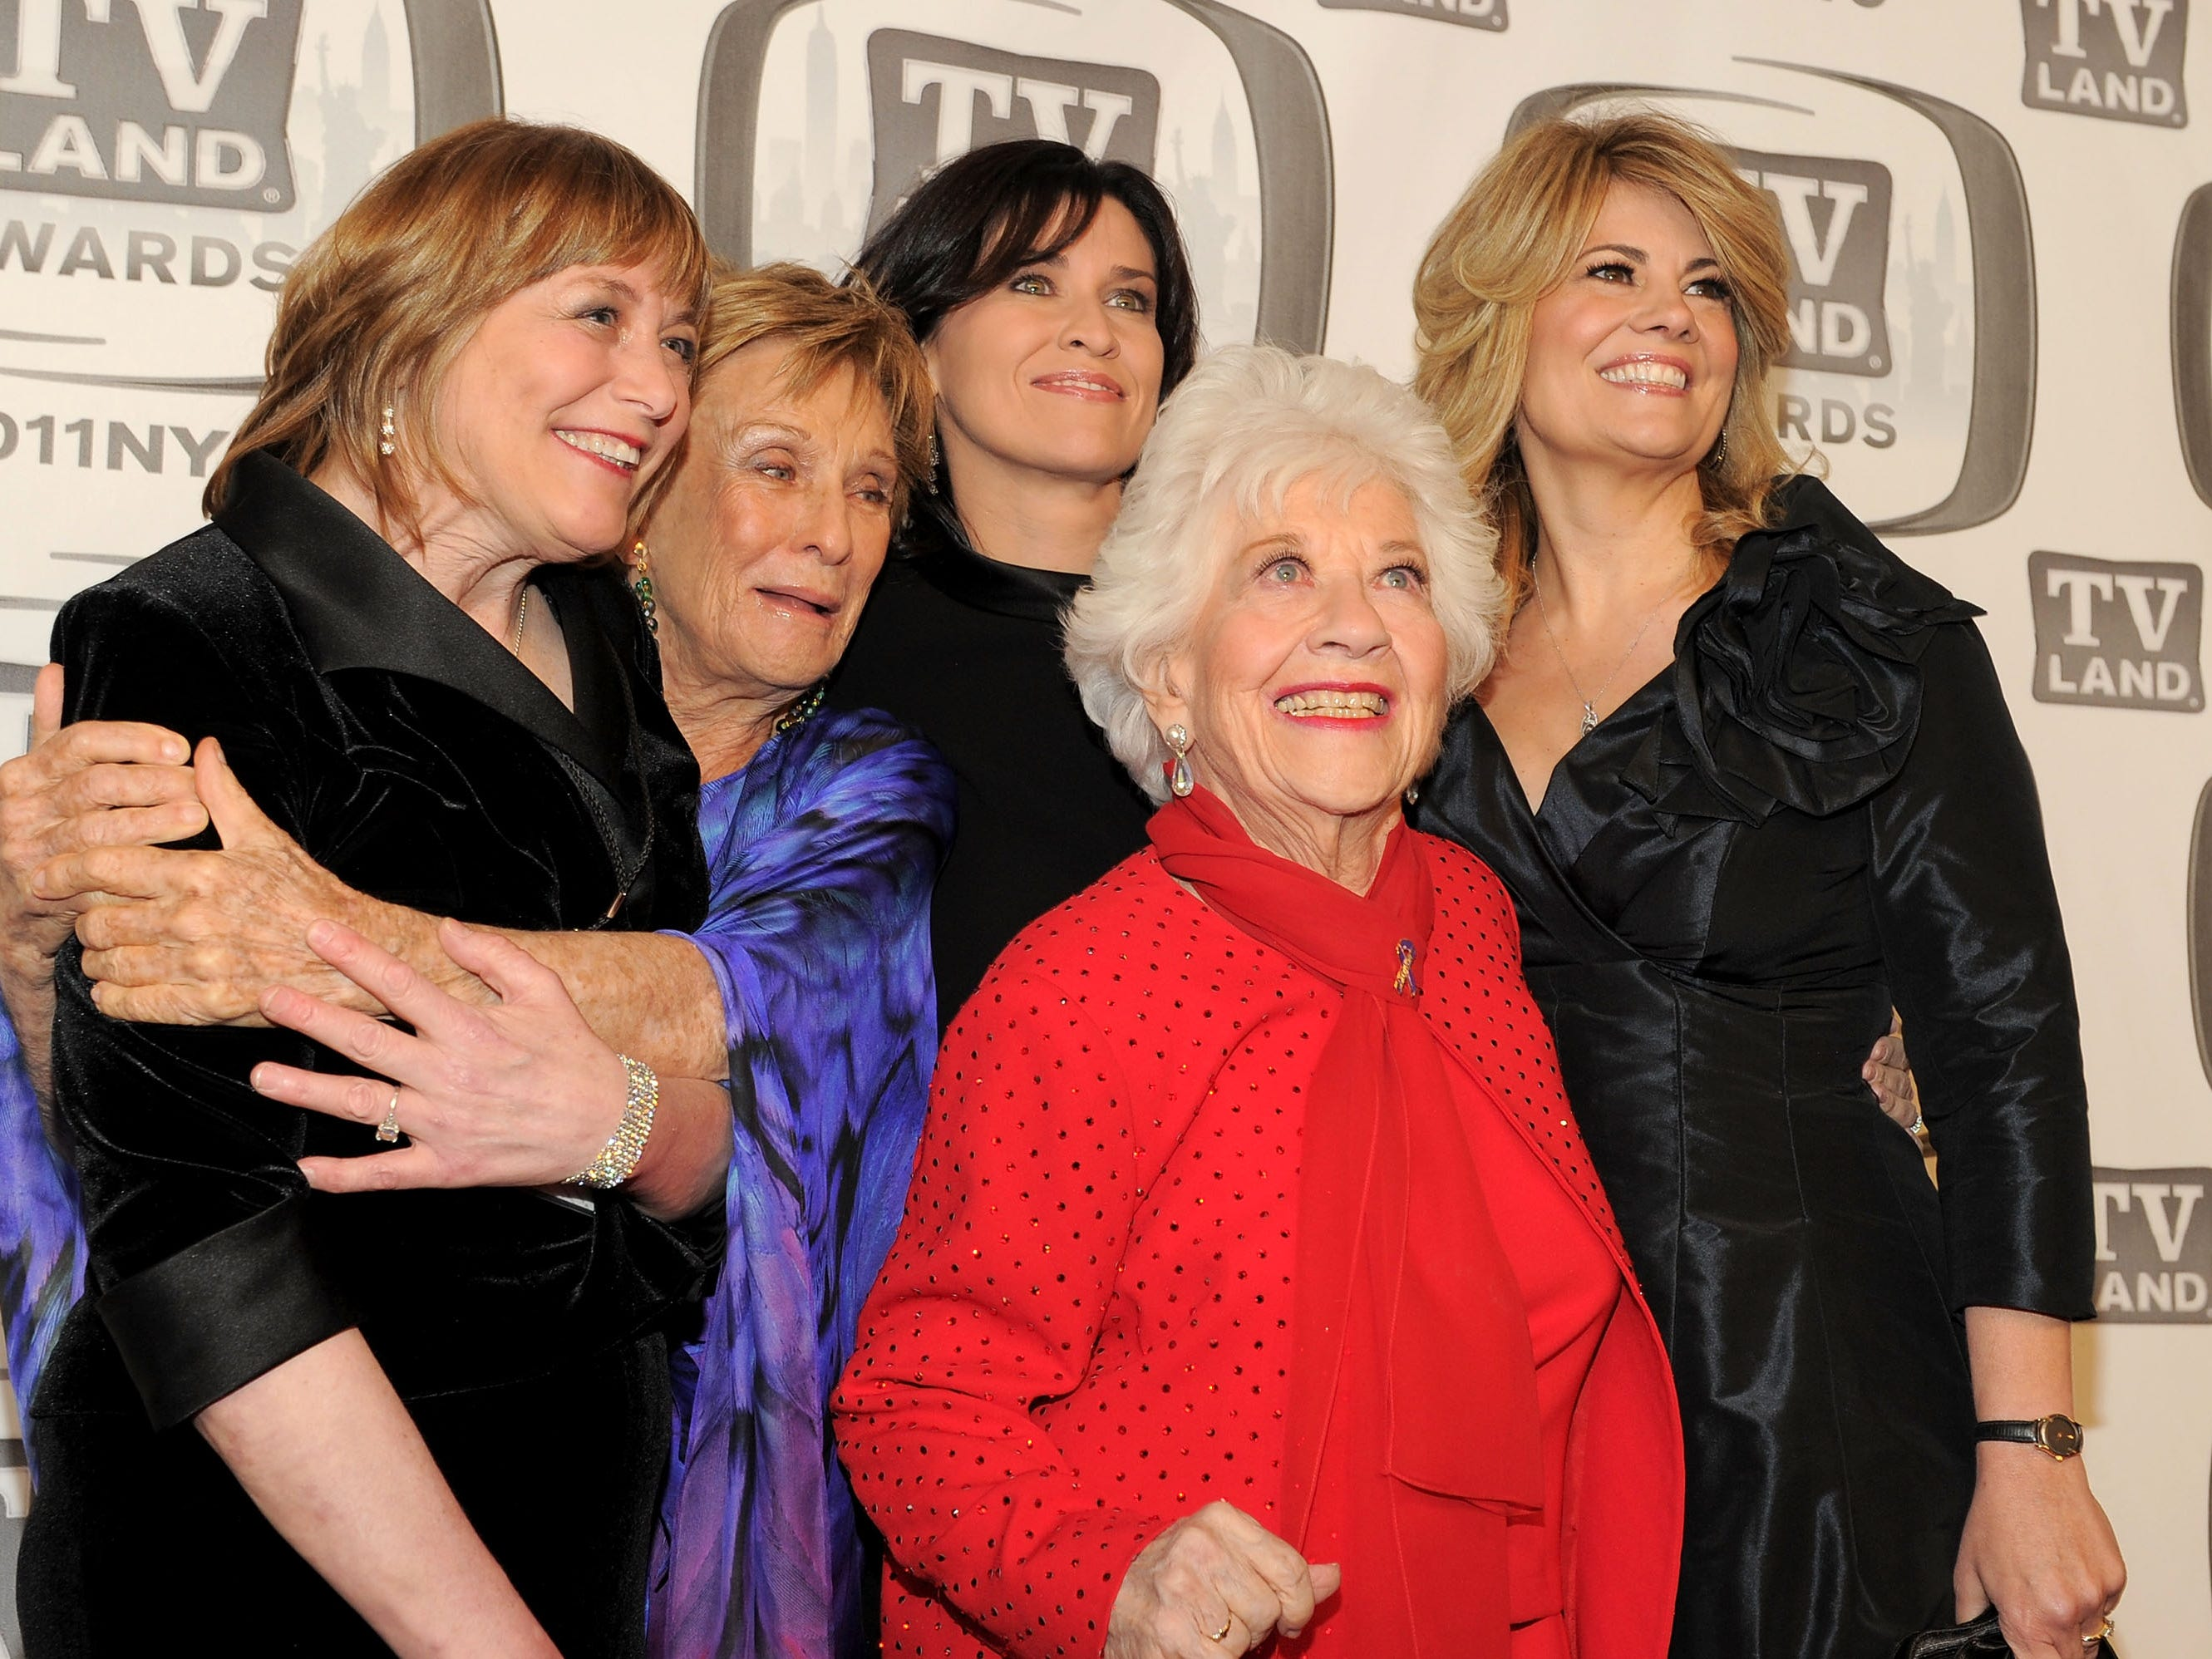 Geri Jewell. Cloris Leachman, Nancy McKeon, Charlotte Rae and Lisa Whelchel attend the 9th Annual TV Land Awards at the Javits Center on April 10, 2011, in New York.